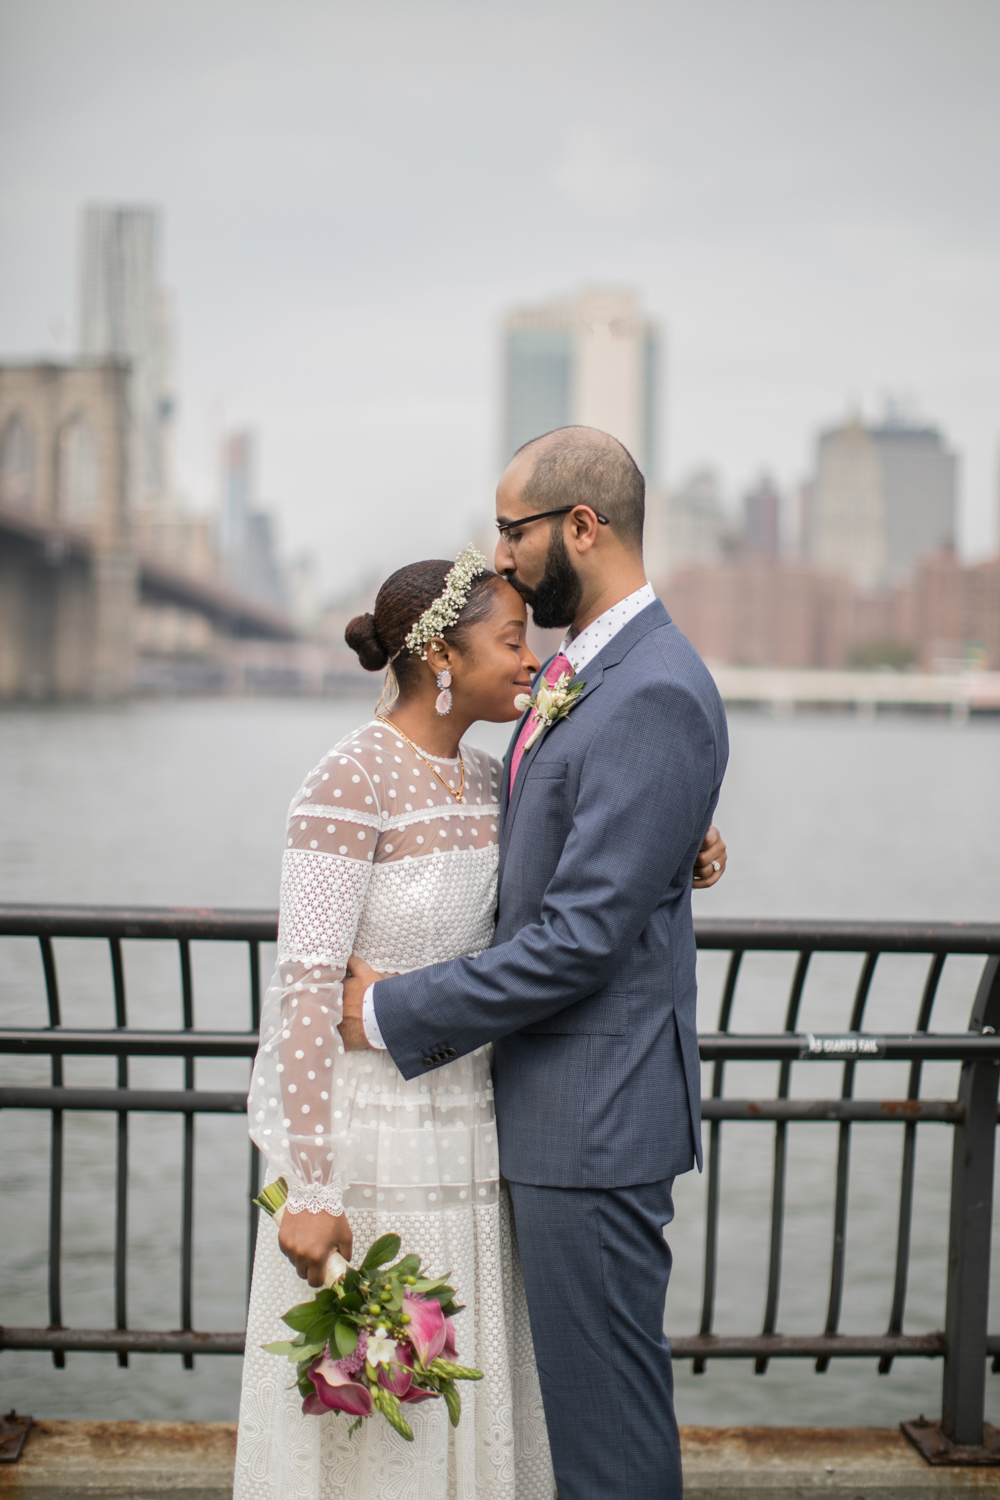 Bride and groom embrace after their wedding ceremony in Brooklyn Bridge Park.